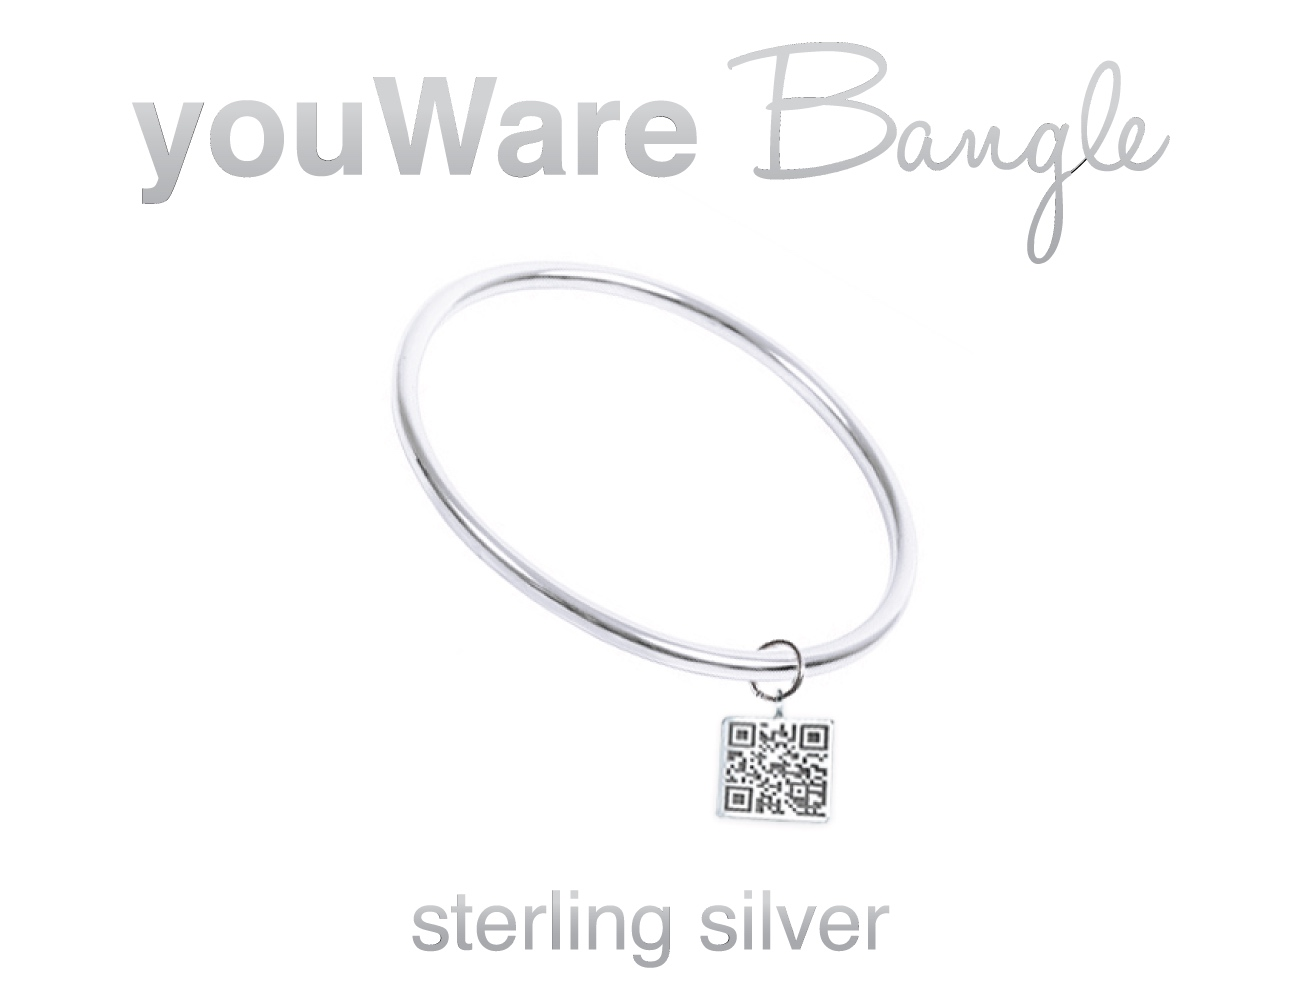 youware-bangle-sterling-silver